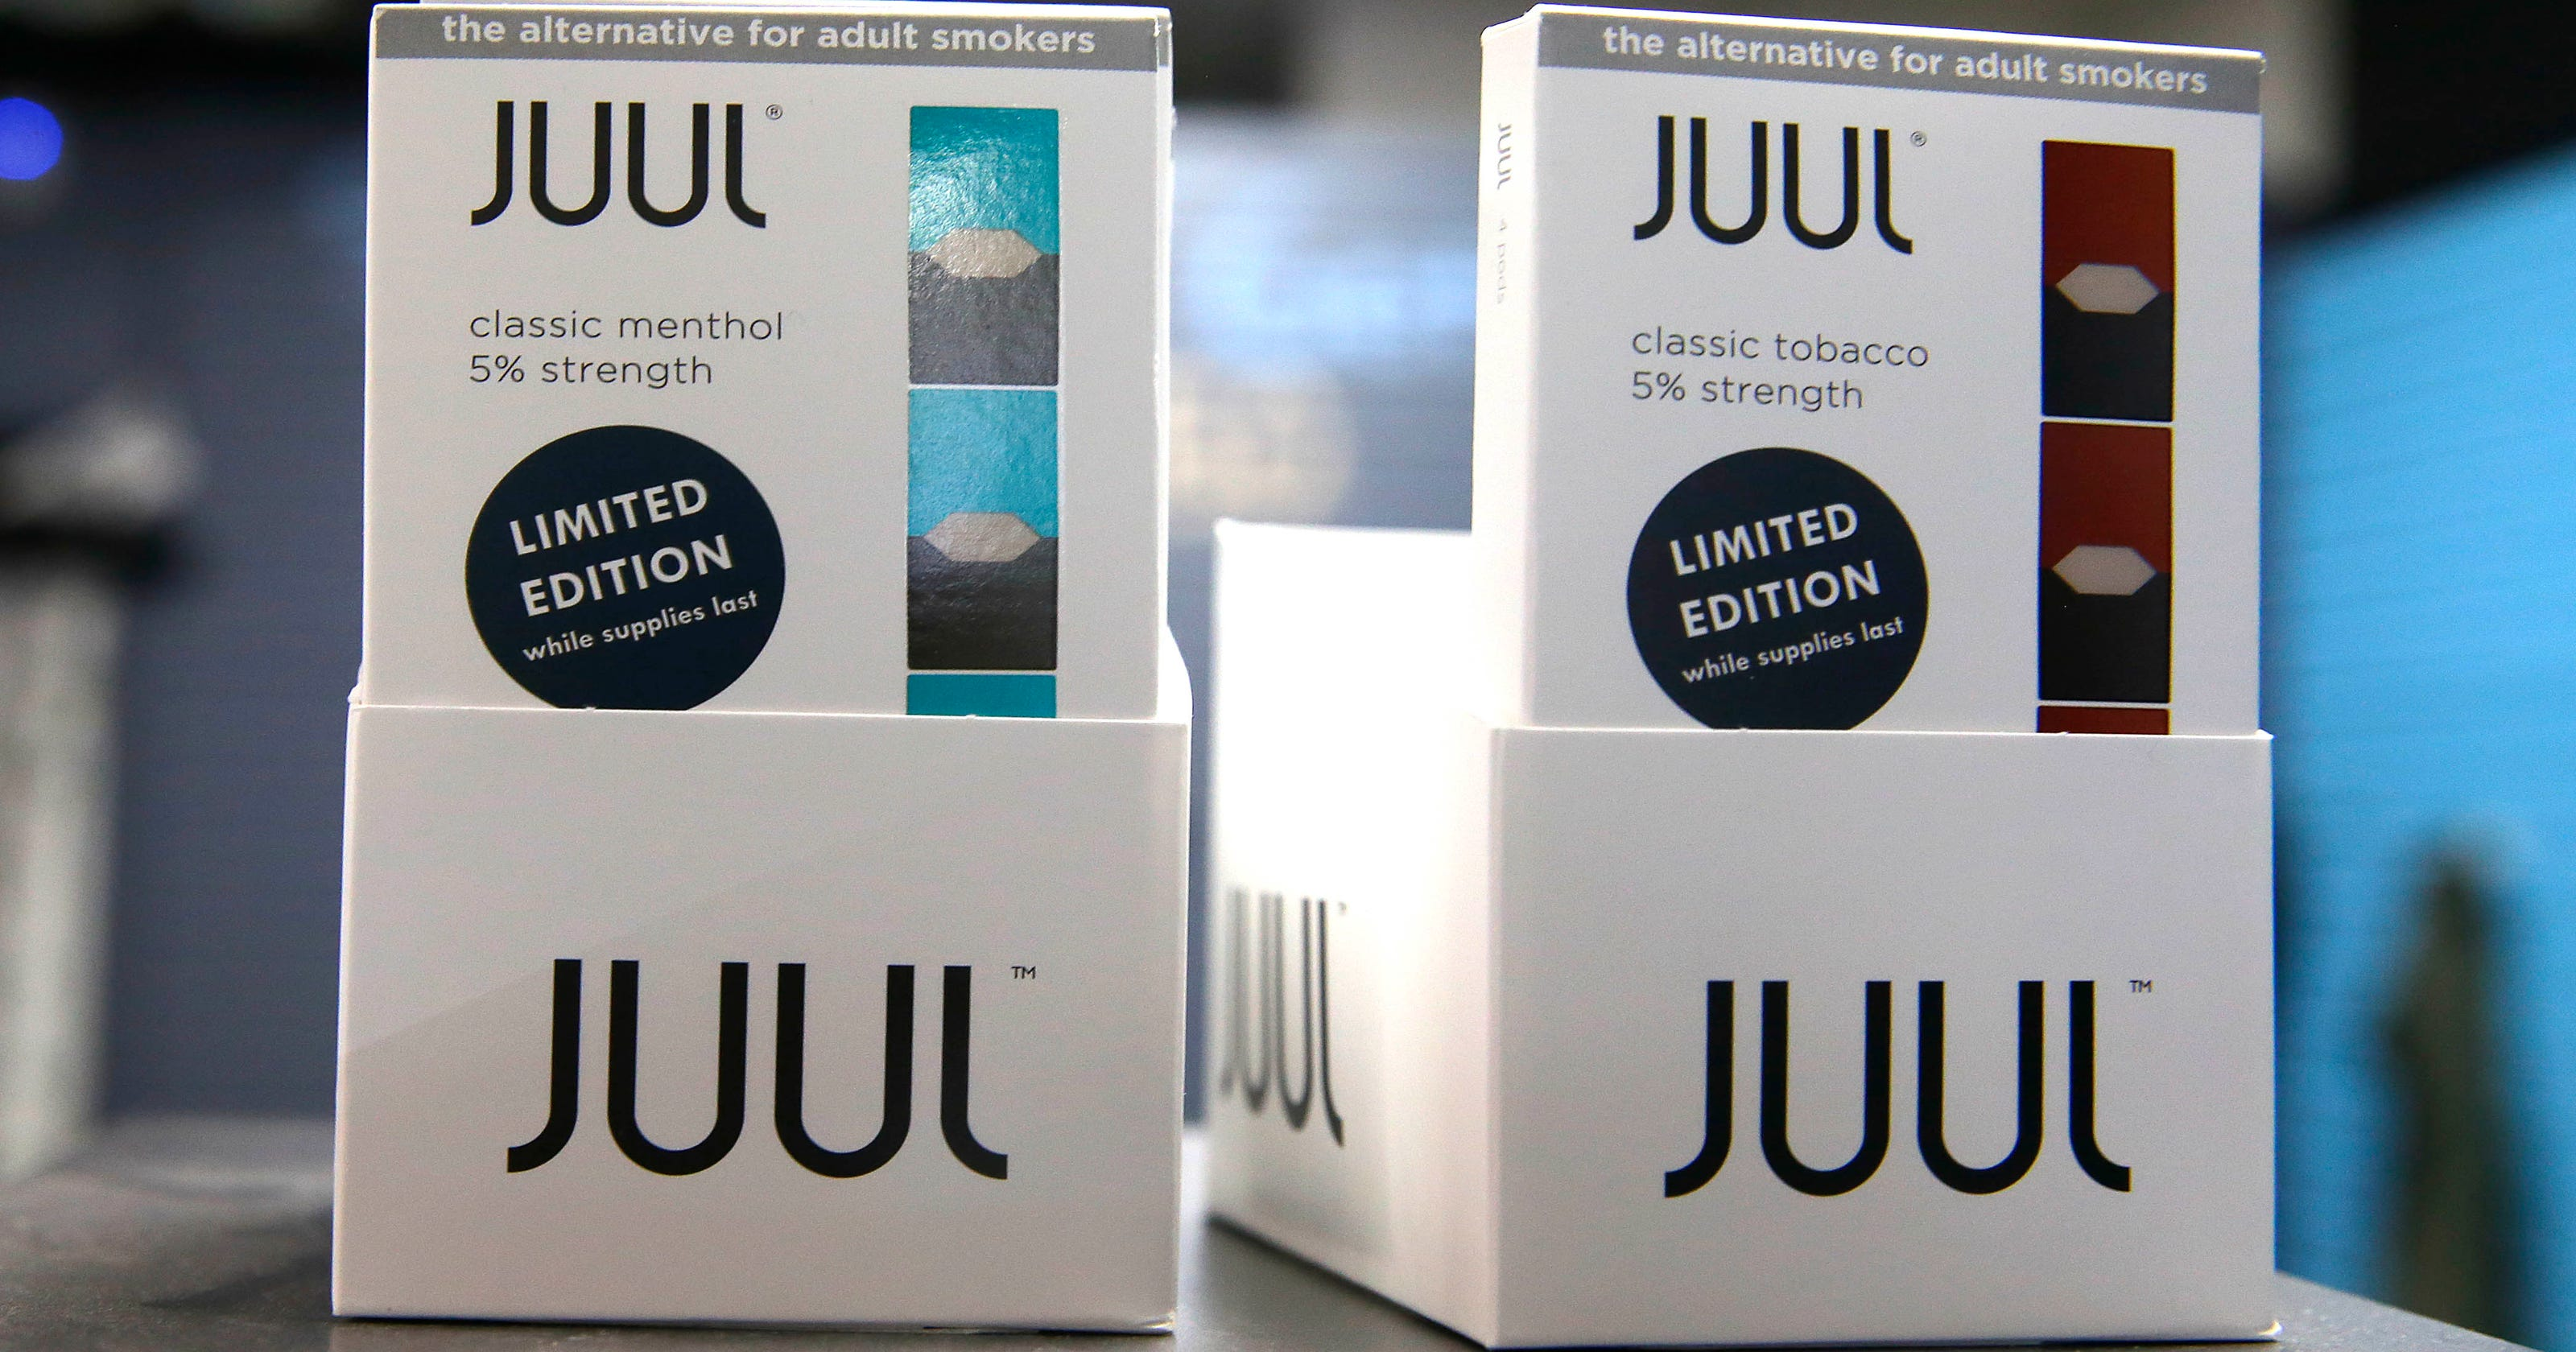 FDA cracks down on JUUL, other e-cigarette sales to minors